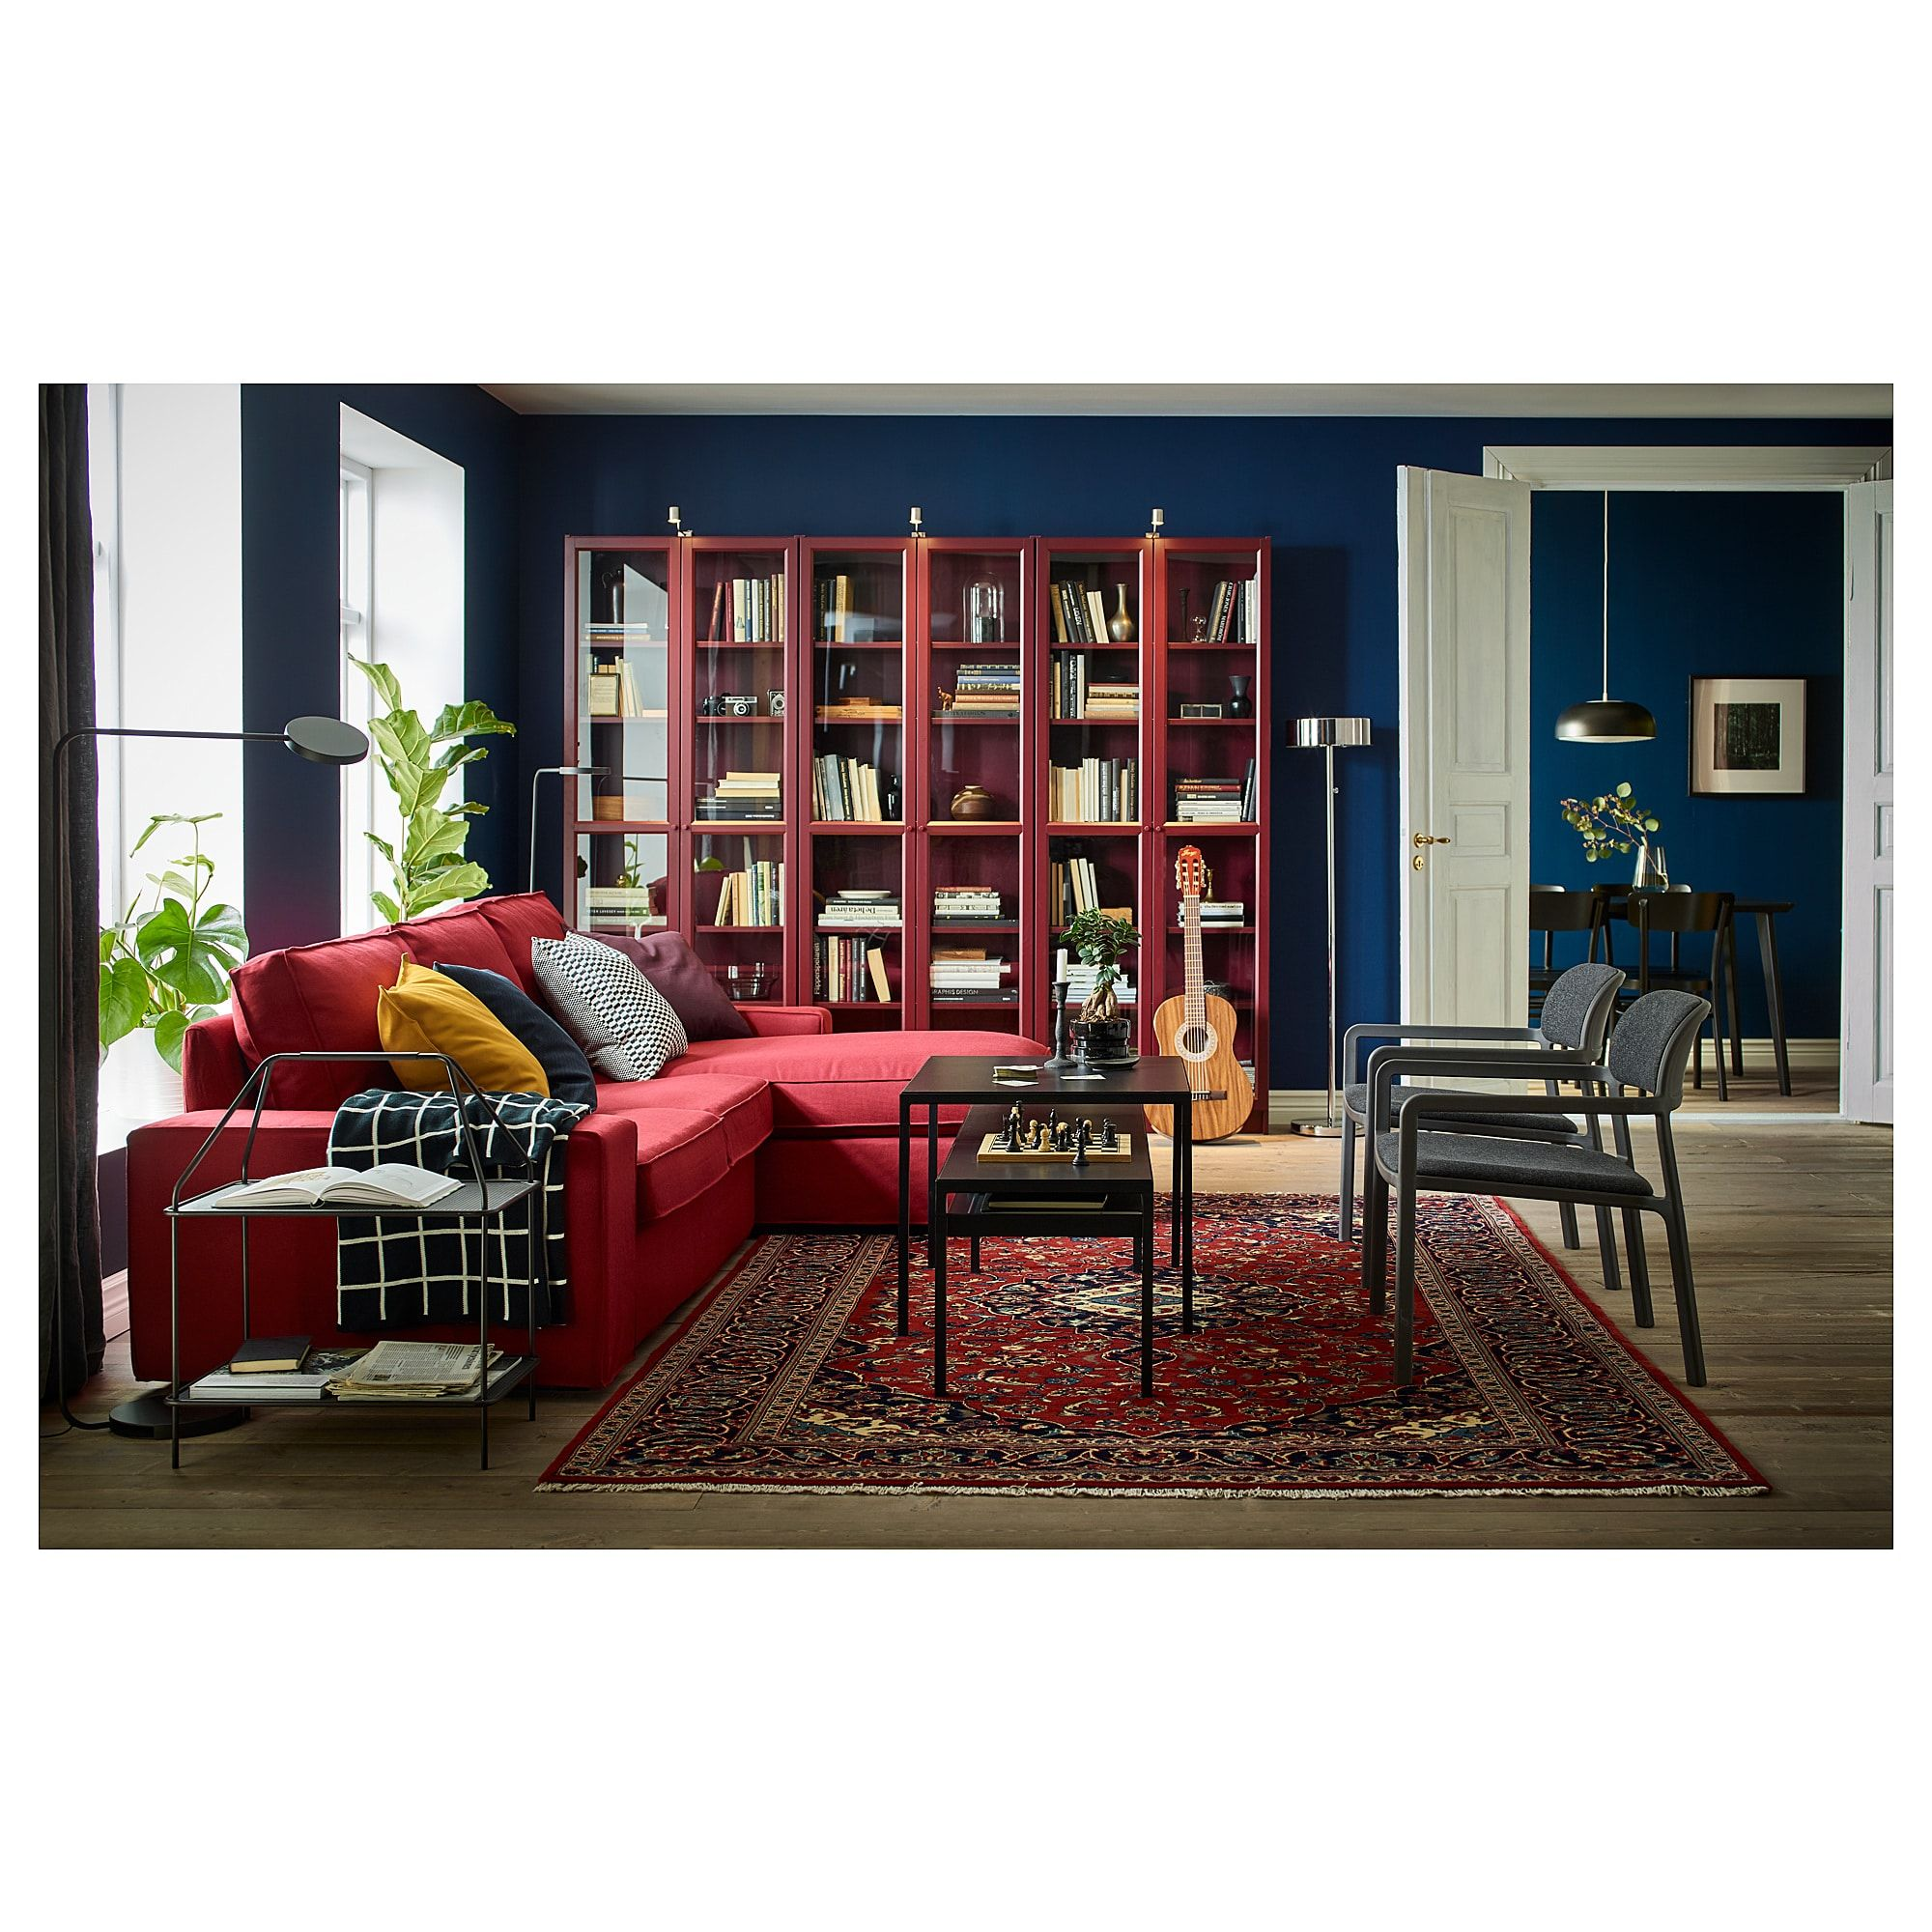 Billy Dark Red Bookcase With Glass Doors 80x30x202 Cm Ikea Bookcase With Glass Doors Glass Cabinet Doors Red Bookcase